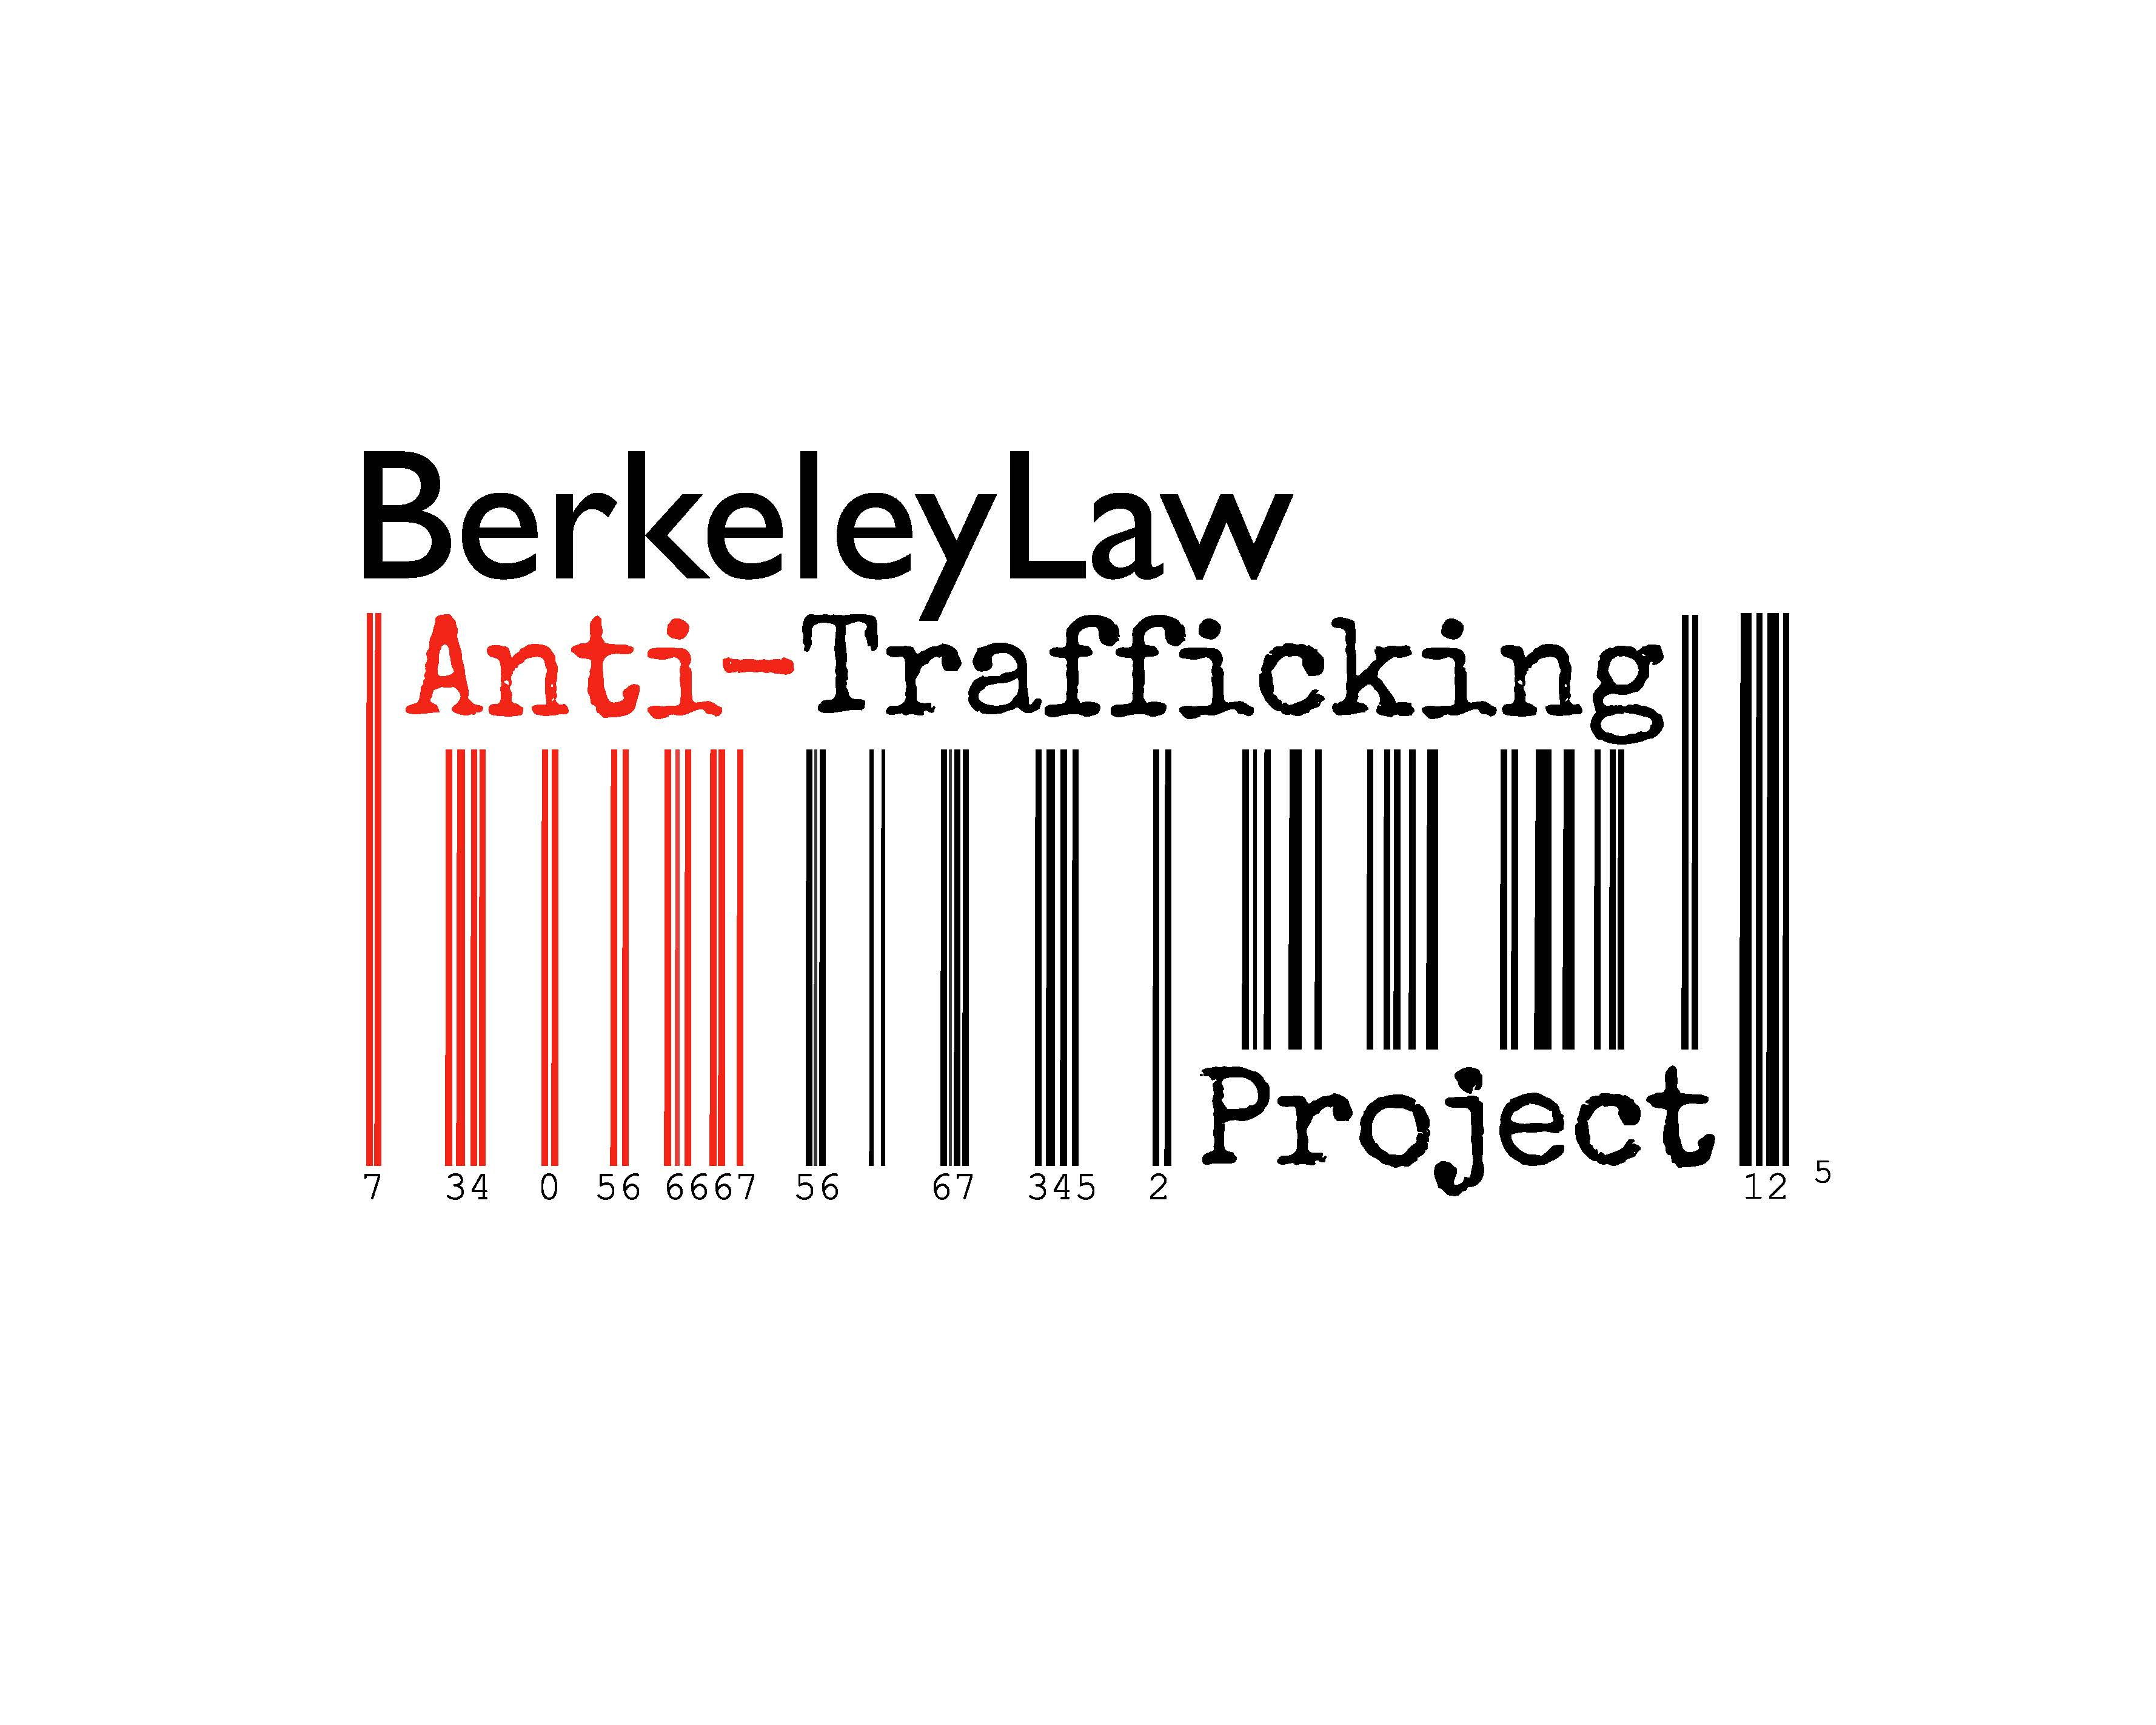 Berkeley Law Antitrafficking Project | Berkeley Law throughout Uc Berkeley Academic Calendar